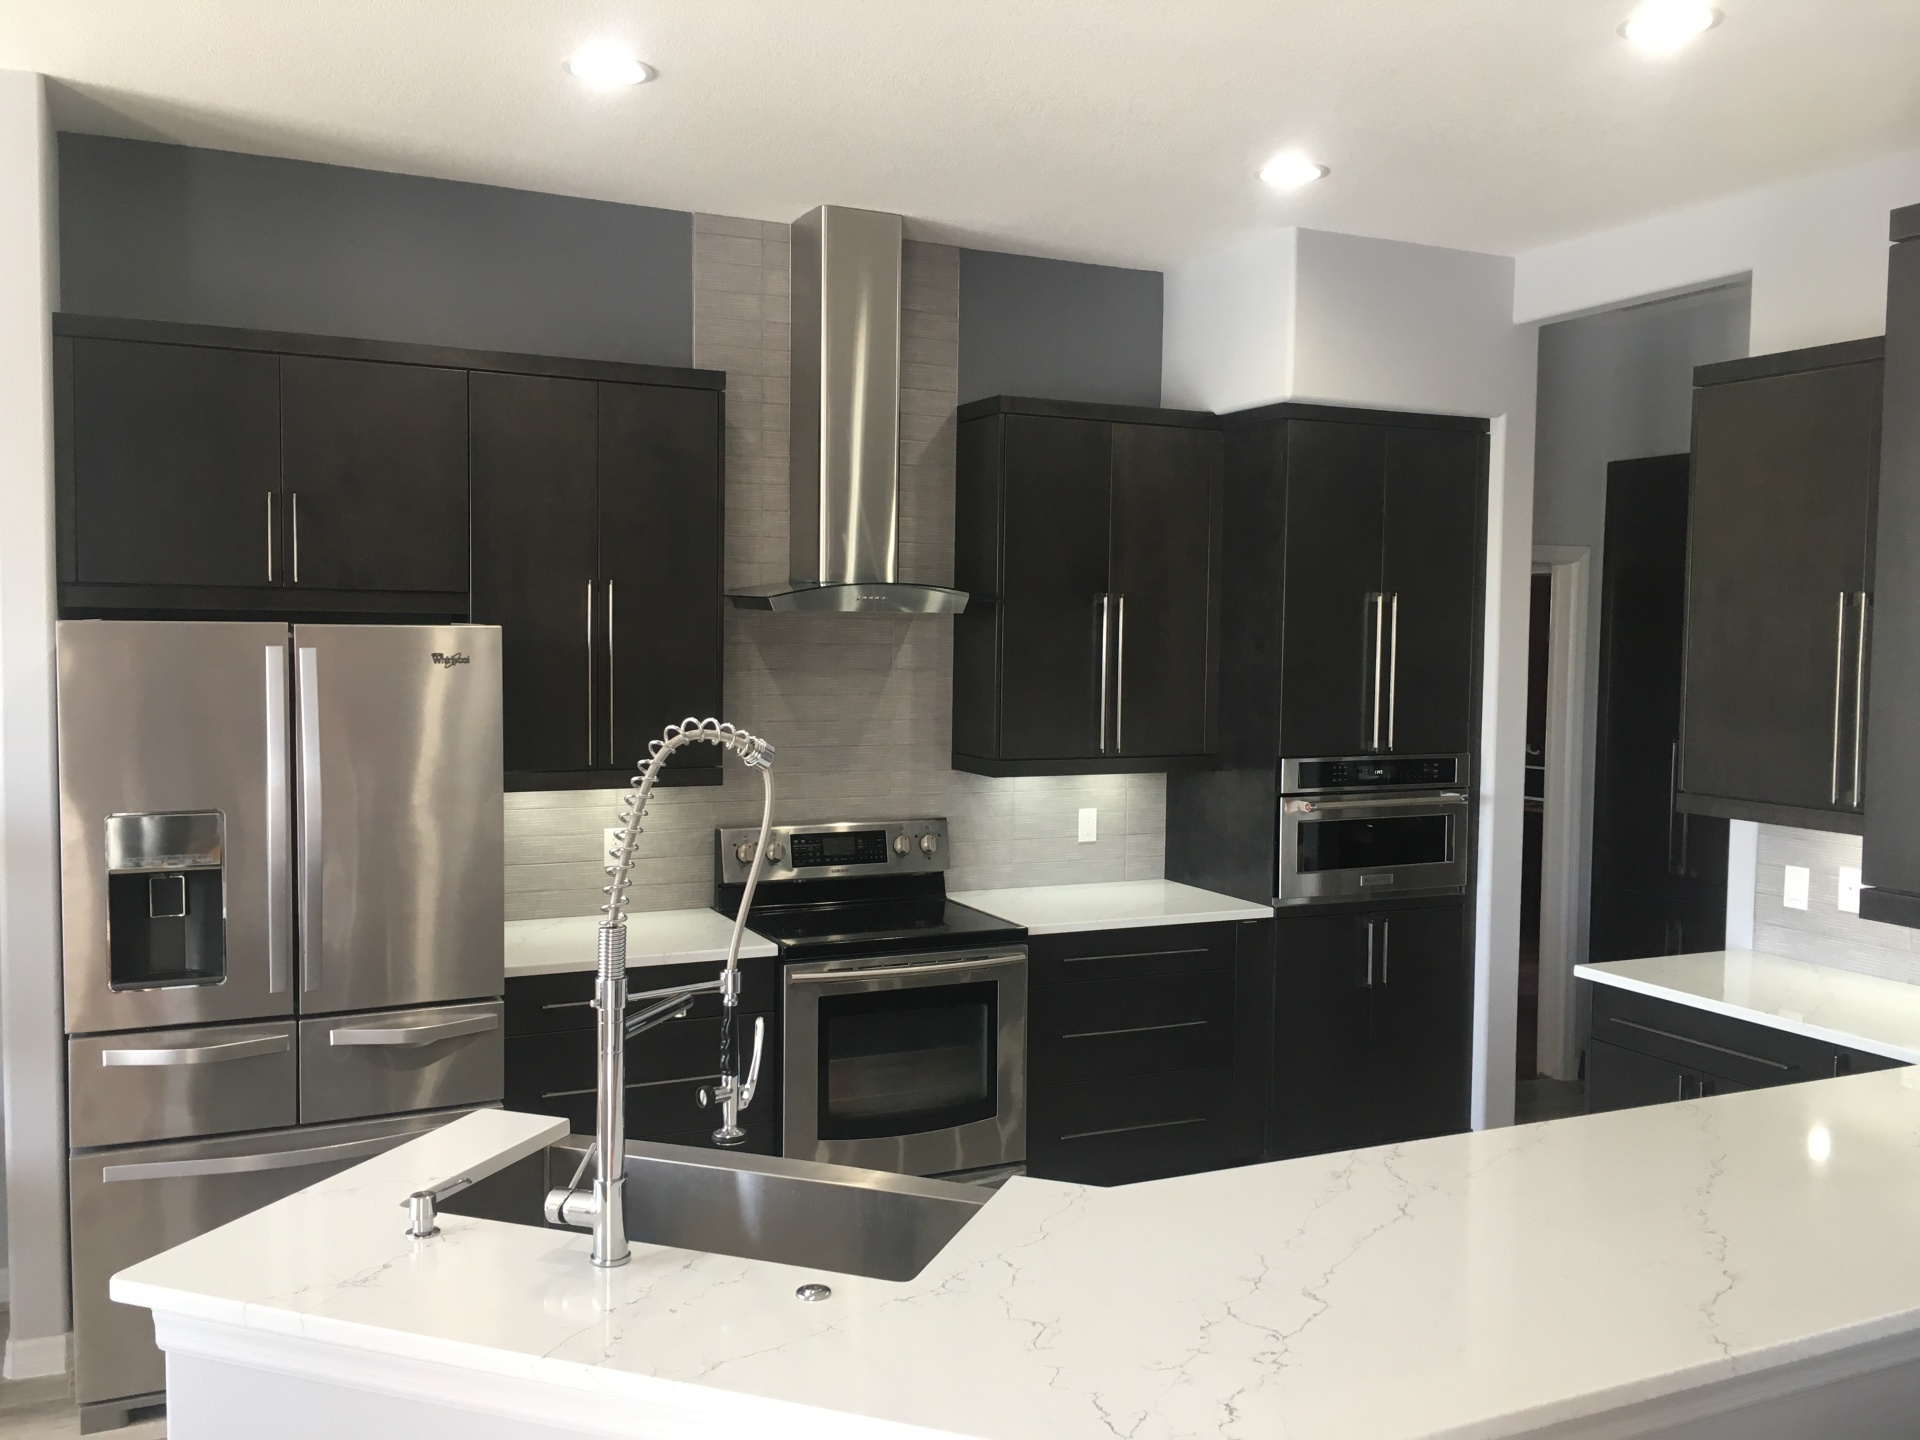 Custom made kitchen cabinets in Sarasota.